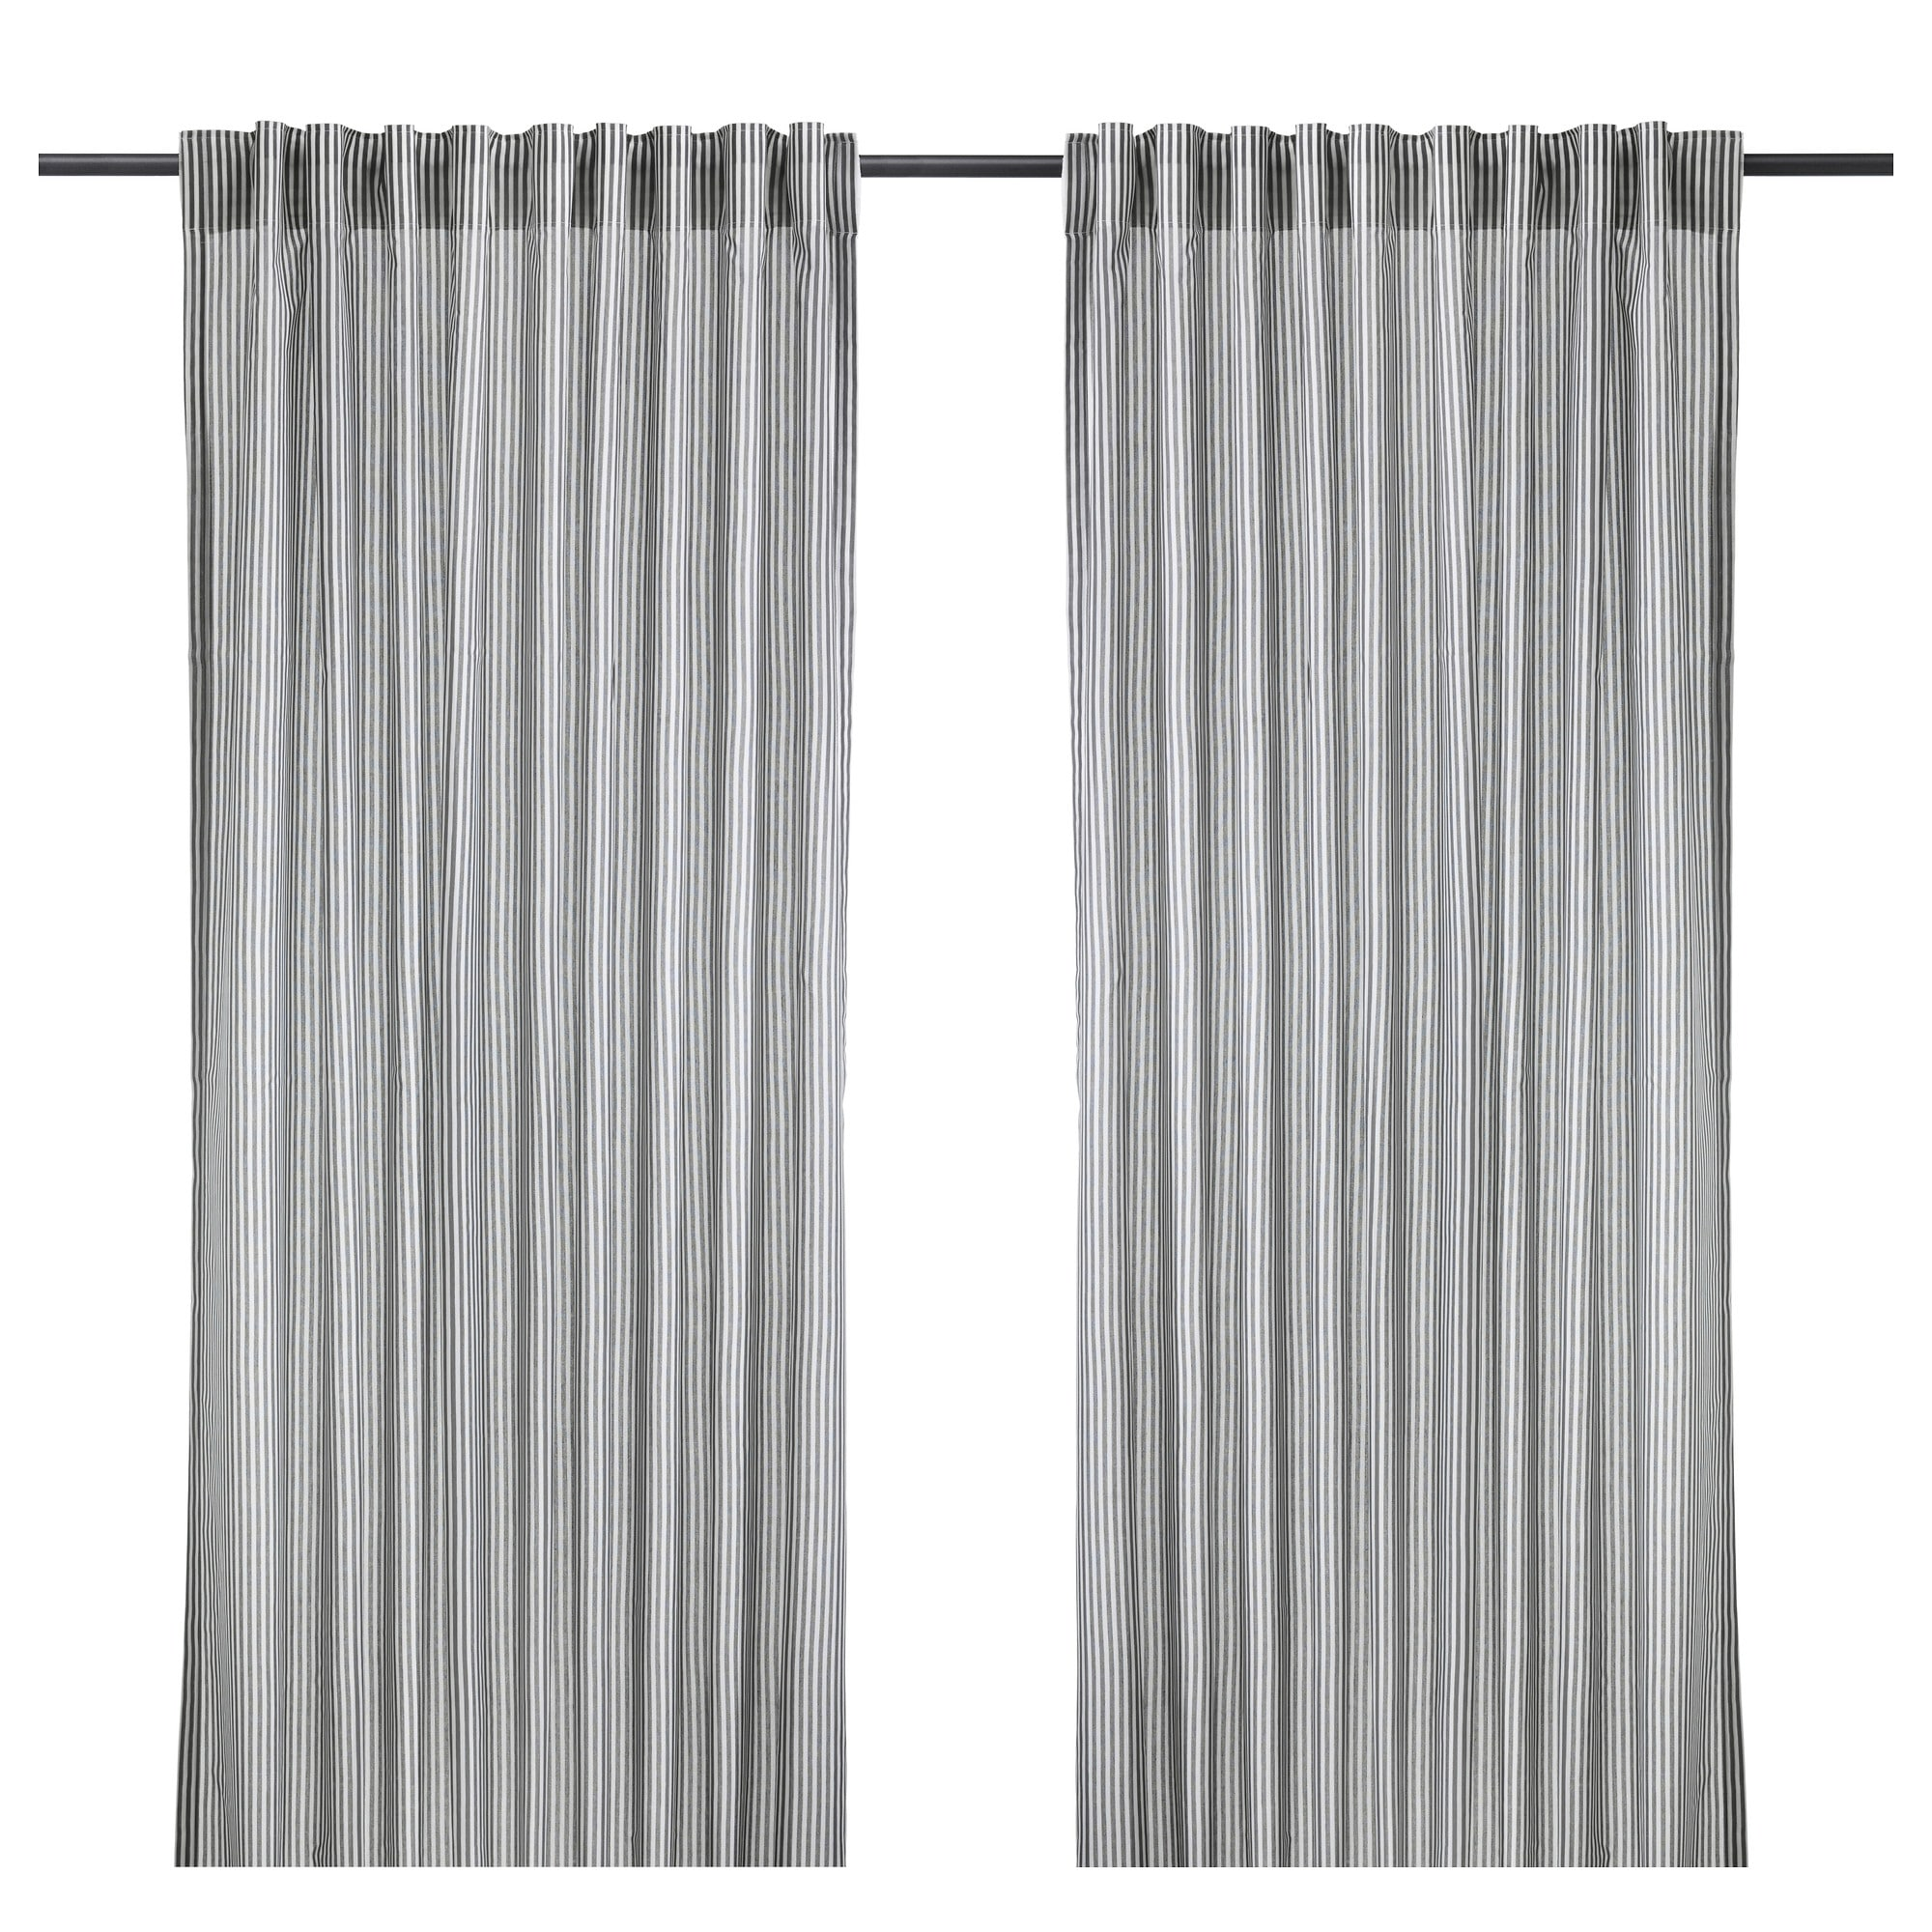 Black and white curtains bedroom - Gulsporre Curtains 1 Pair White Gray Length 98 Width 57